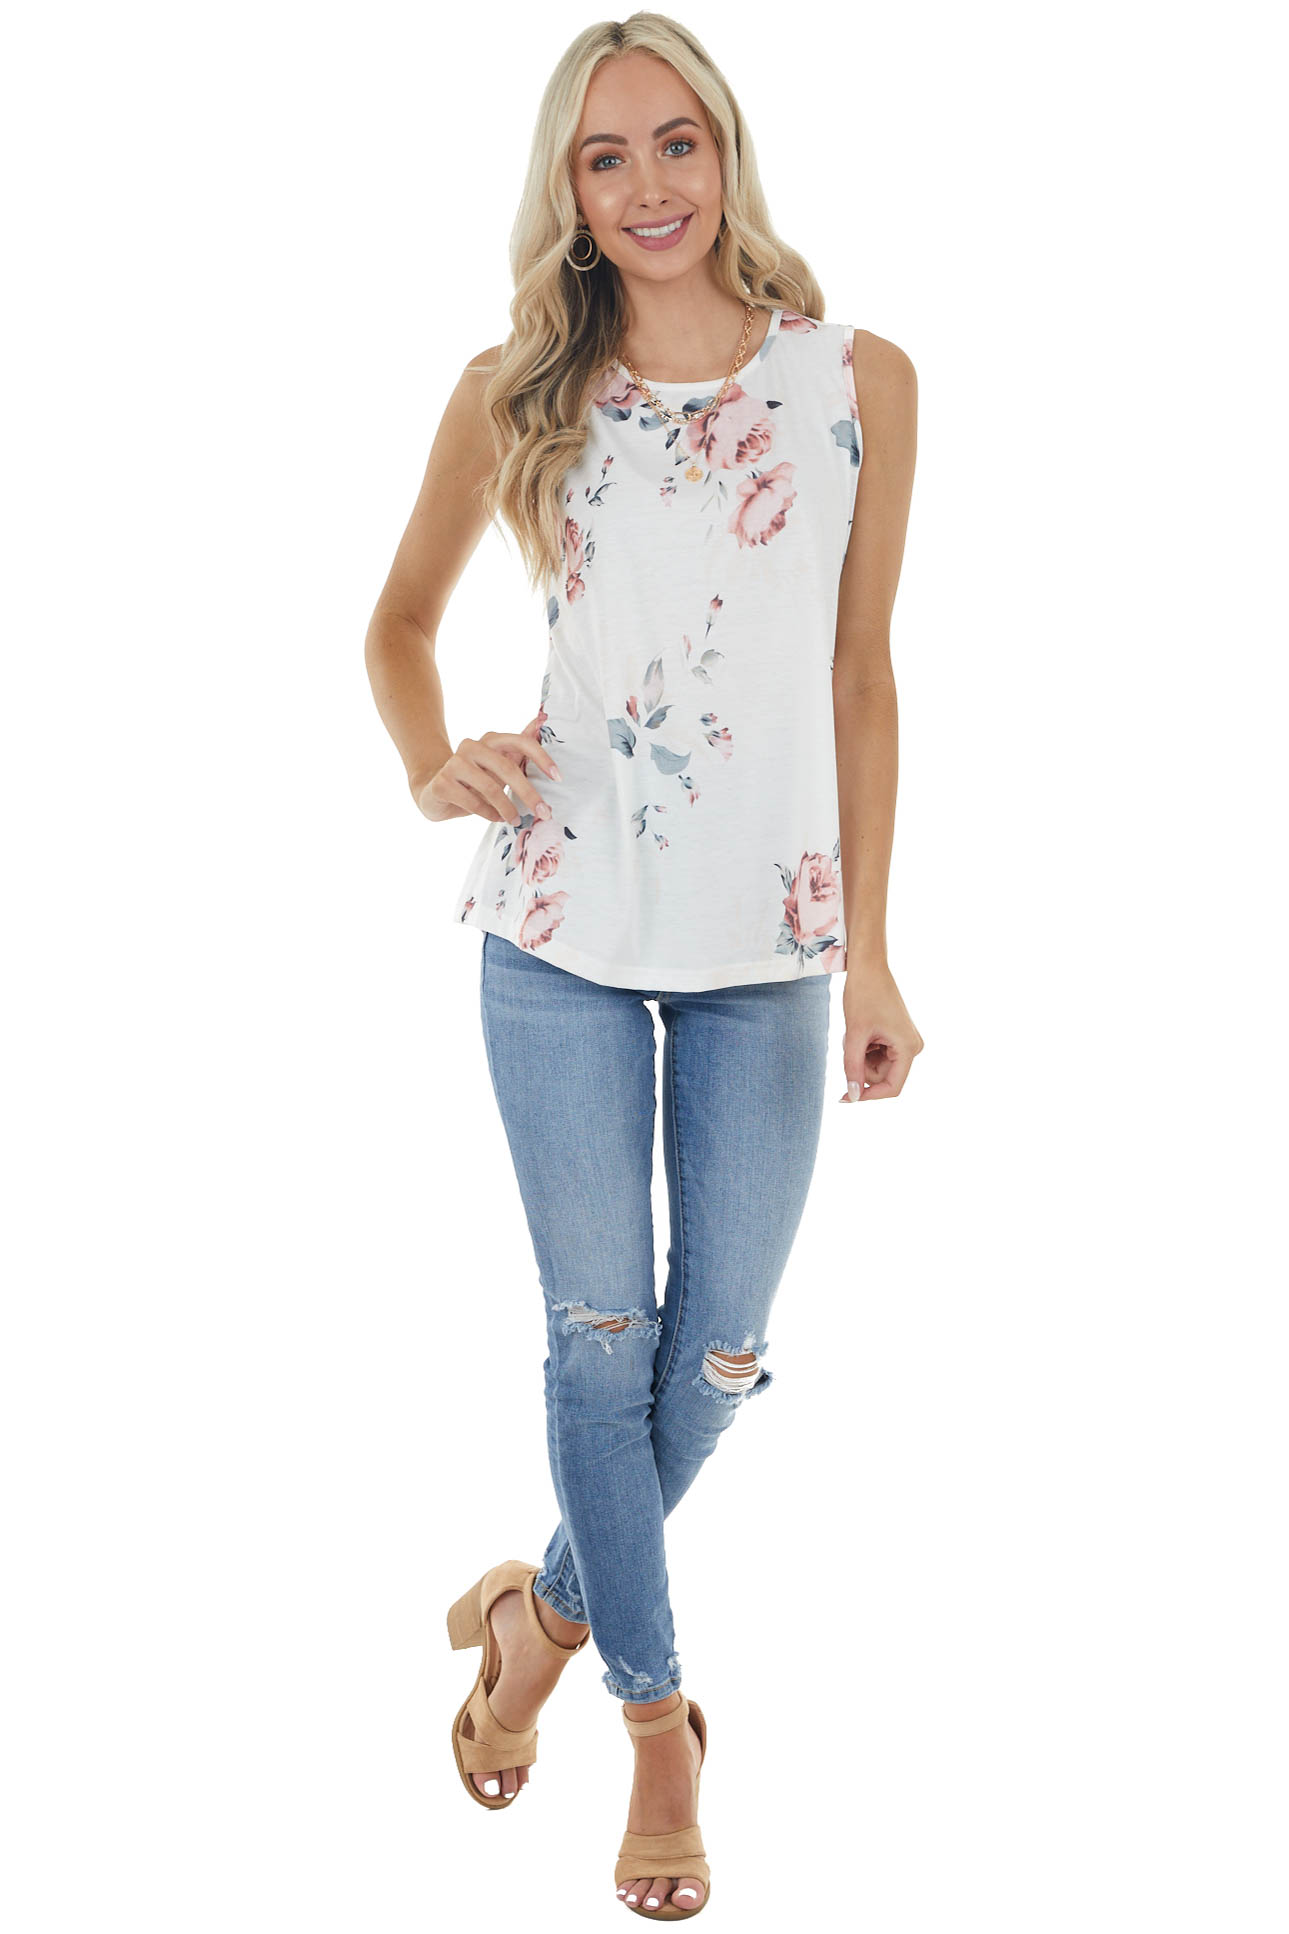 Pearl White Floral Print Soft Tank Top with Rounded Neck